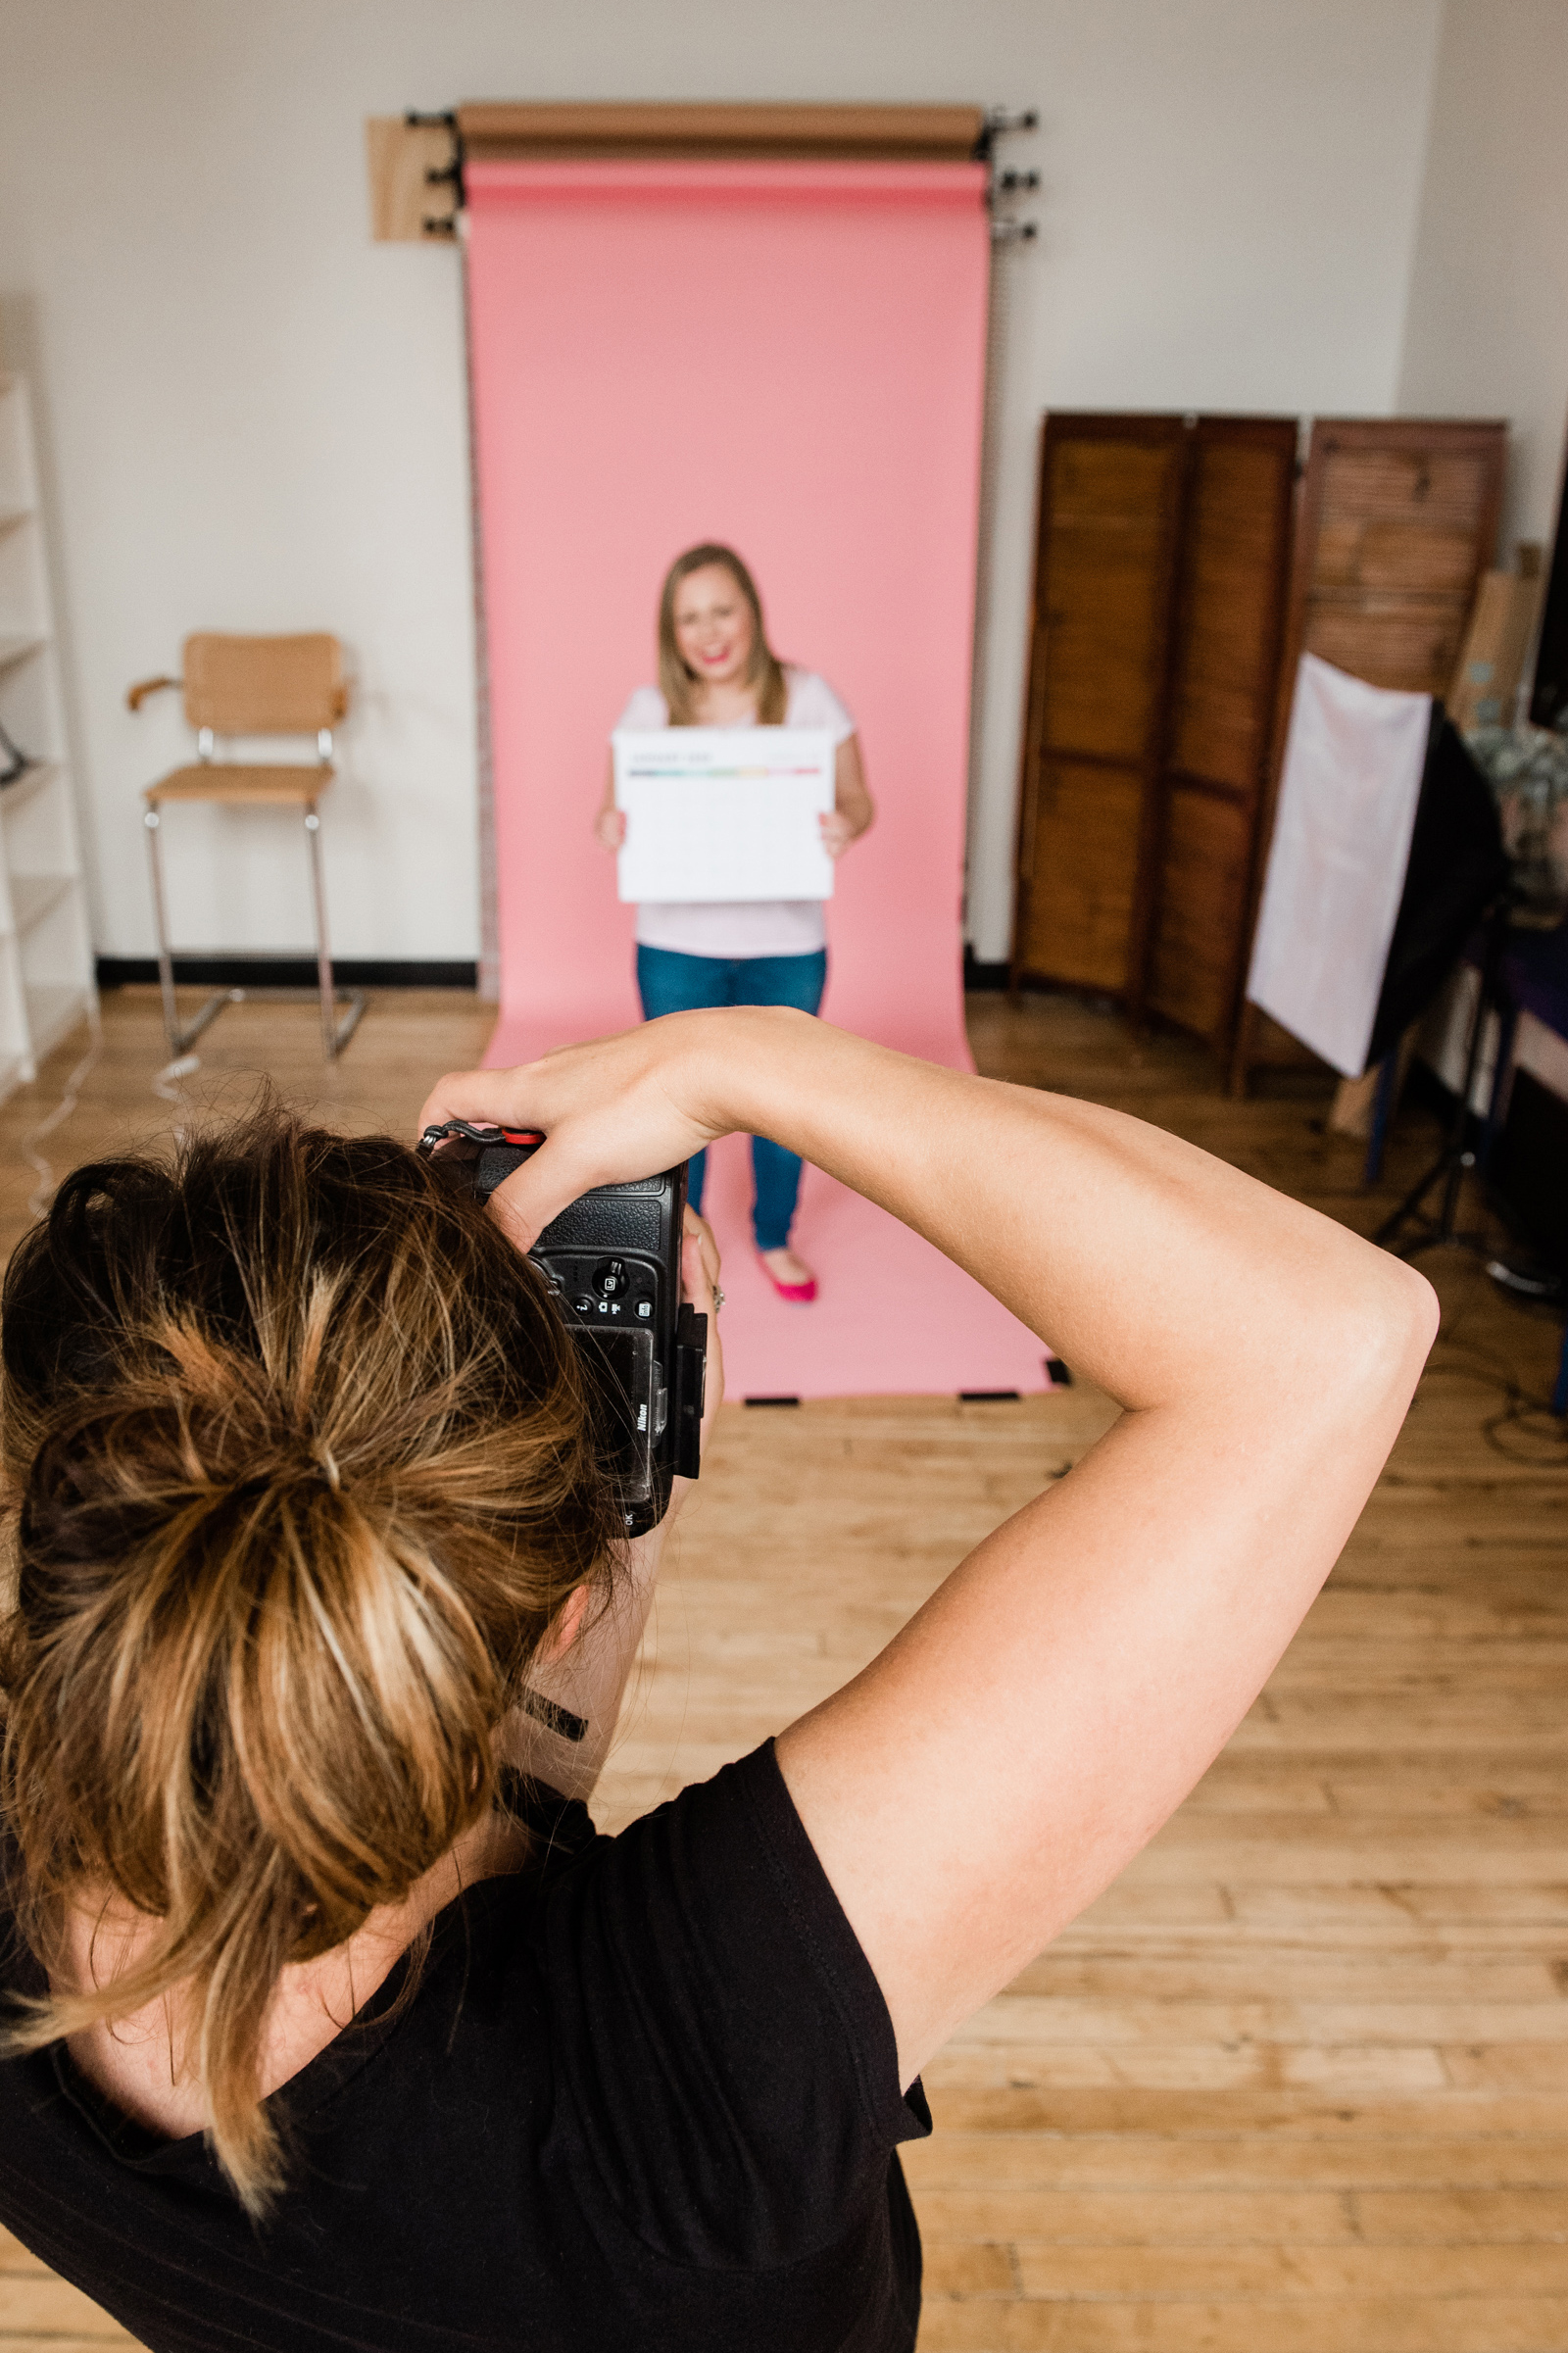 behind the scenes shot of jamie bannon photographing a brand shoot, photographed by chistina wesley photography.